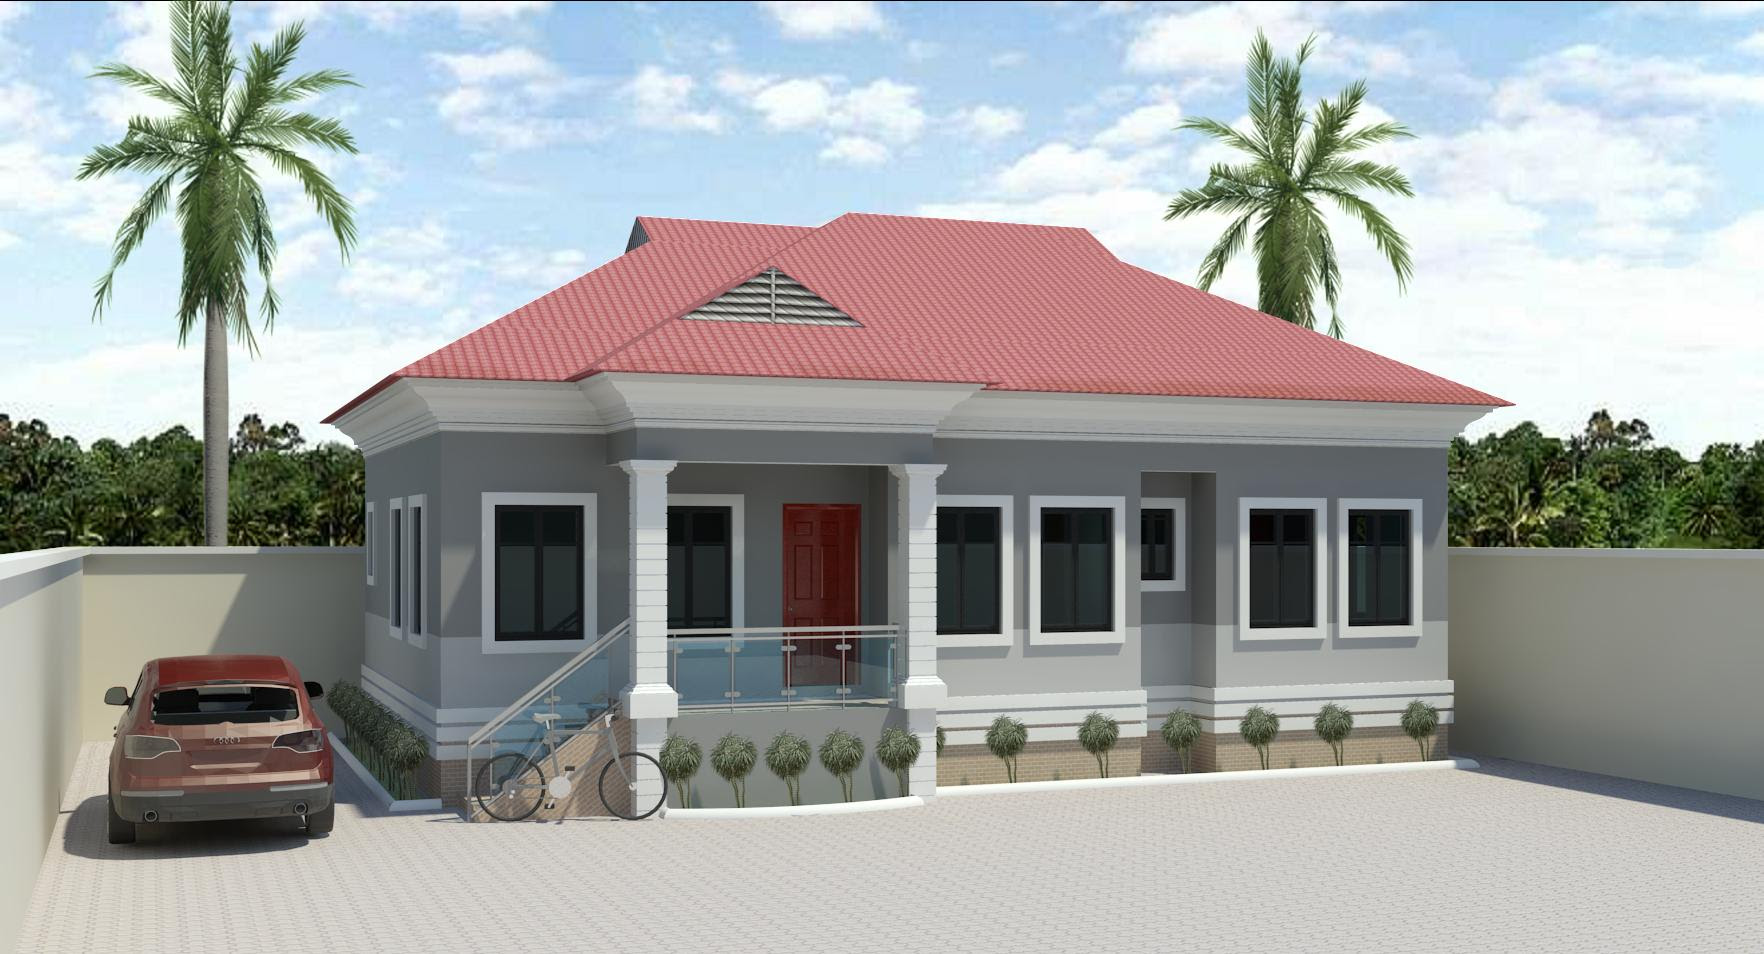 Architectural Designs Of Bungalow Houses In Nigeria ...